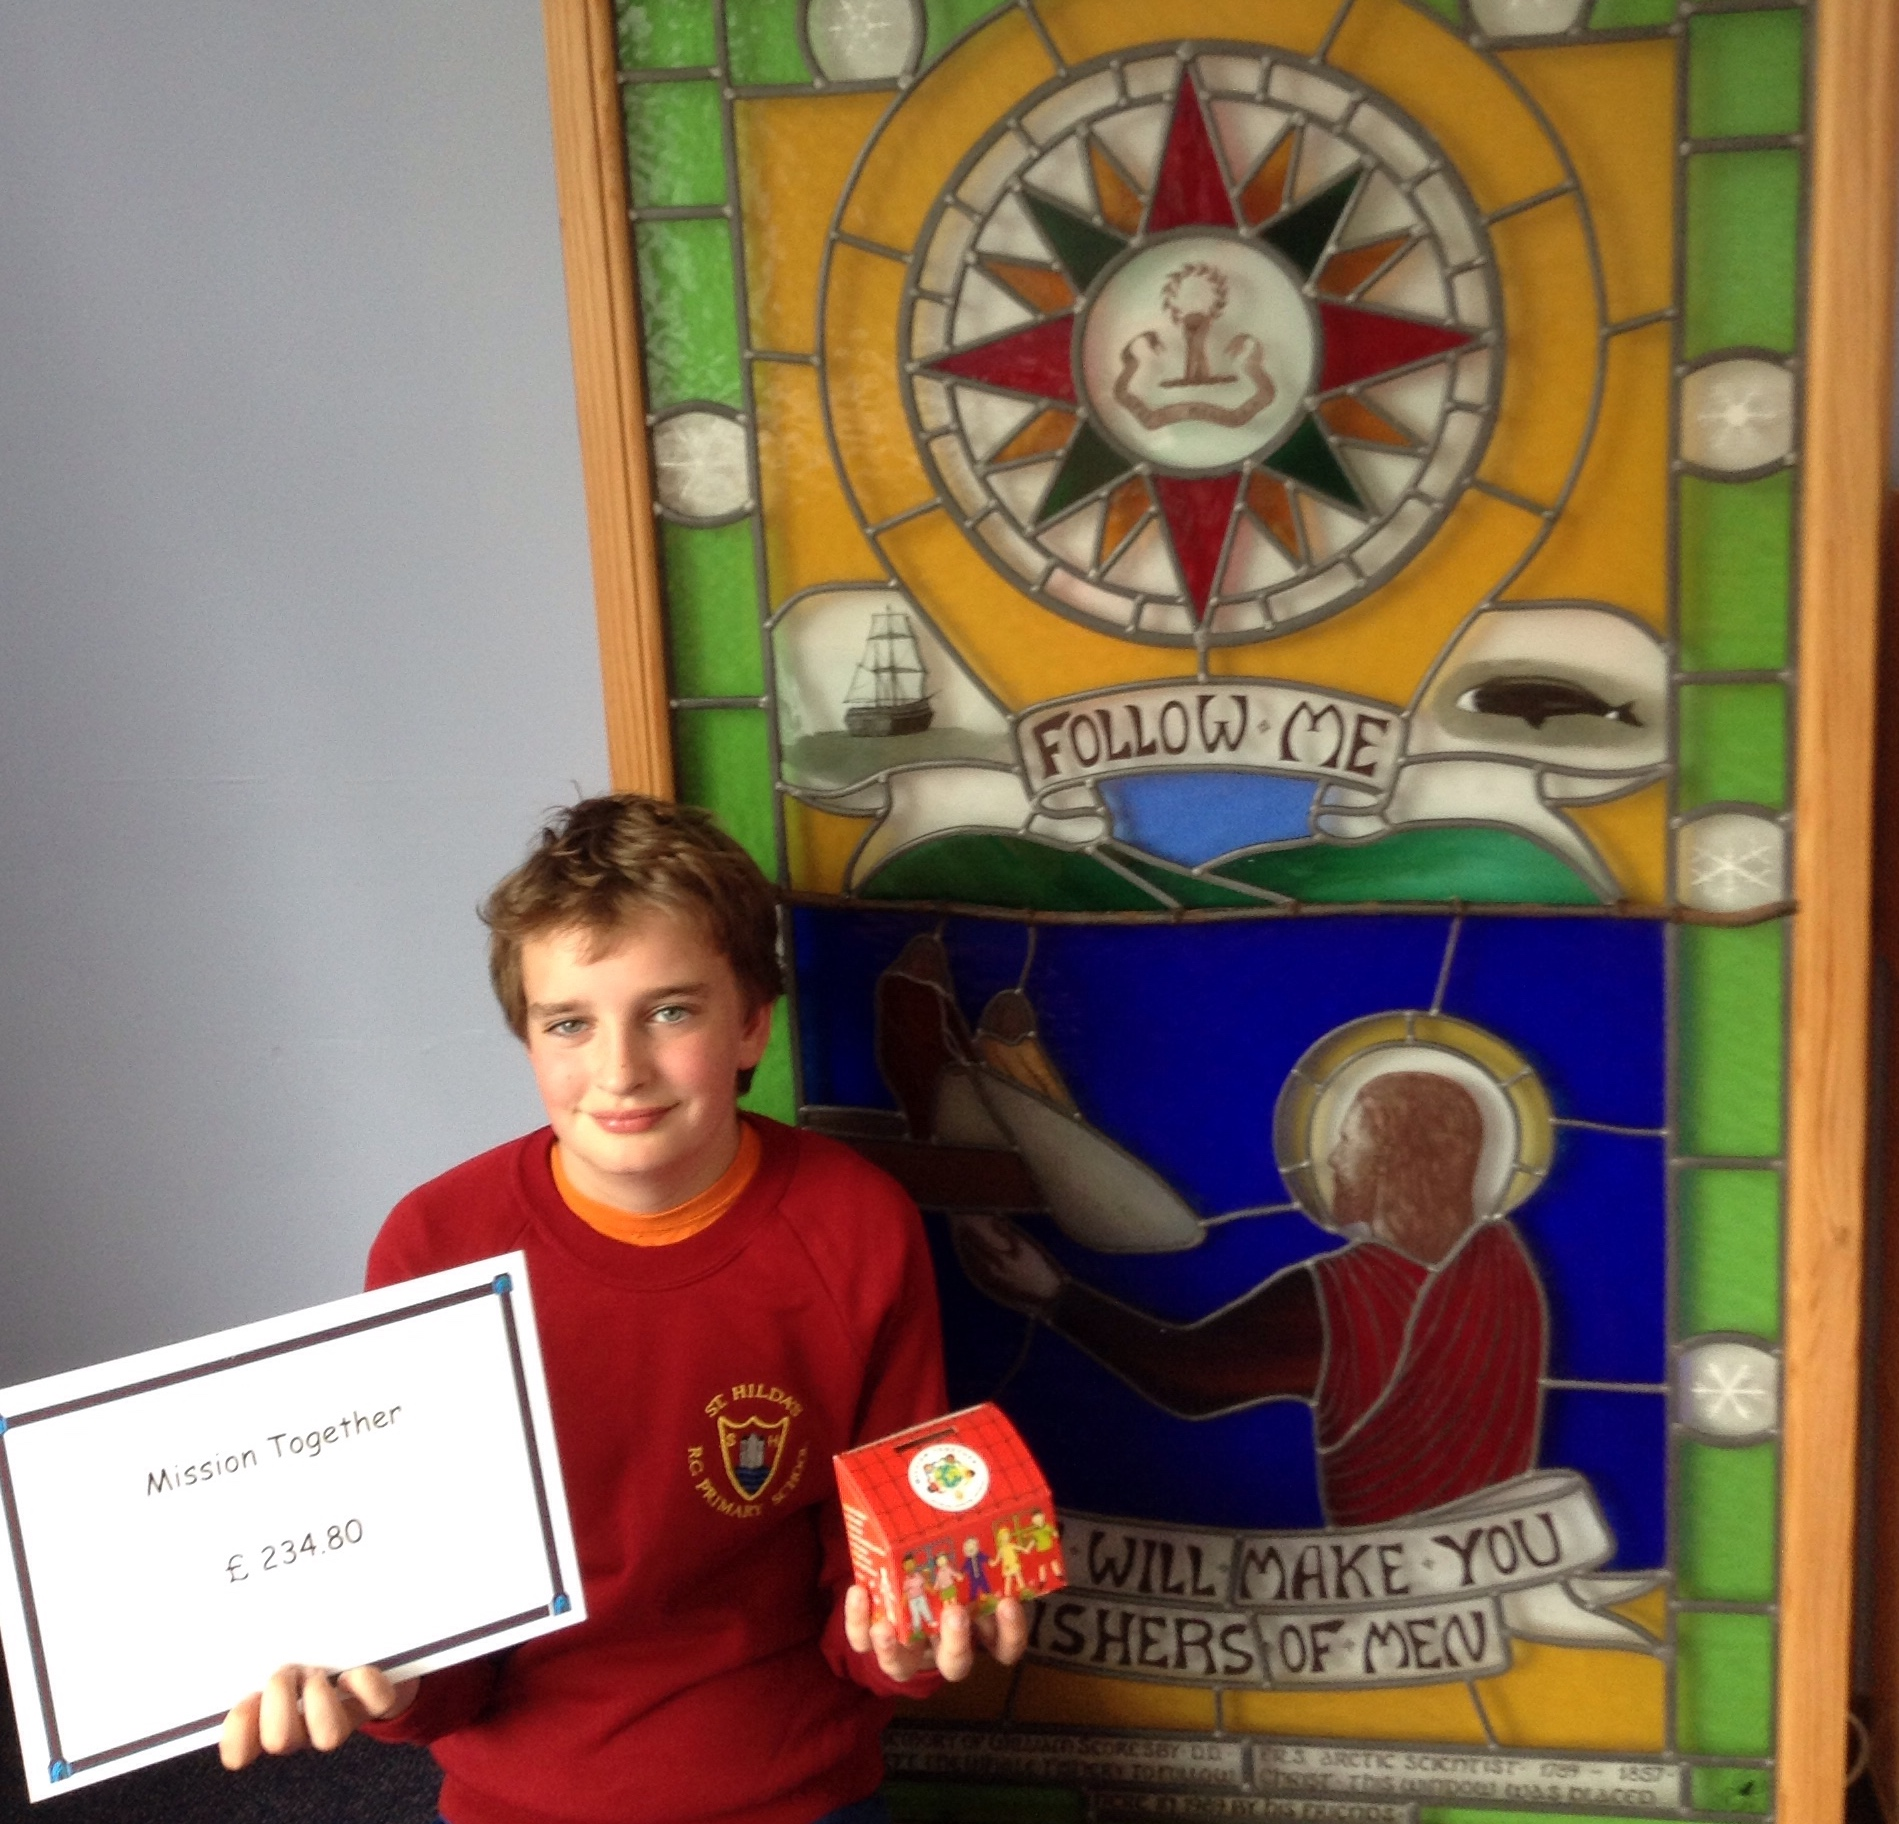 A Year 6 pupil at St Hilda's Roman Catholic Primary School in Whitby has stunned the organisers of this year's Mission Together appeal by single-handedly raising more than £200 for less fortunate children.